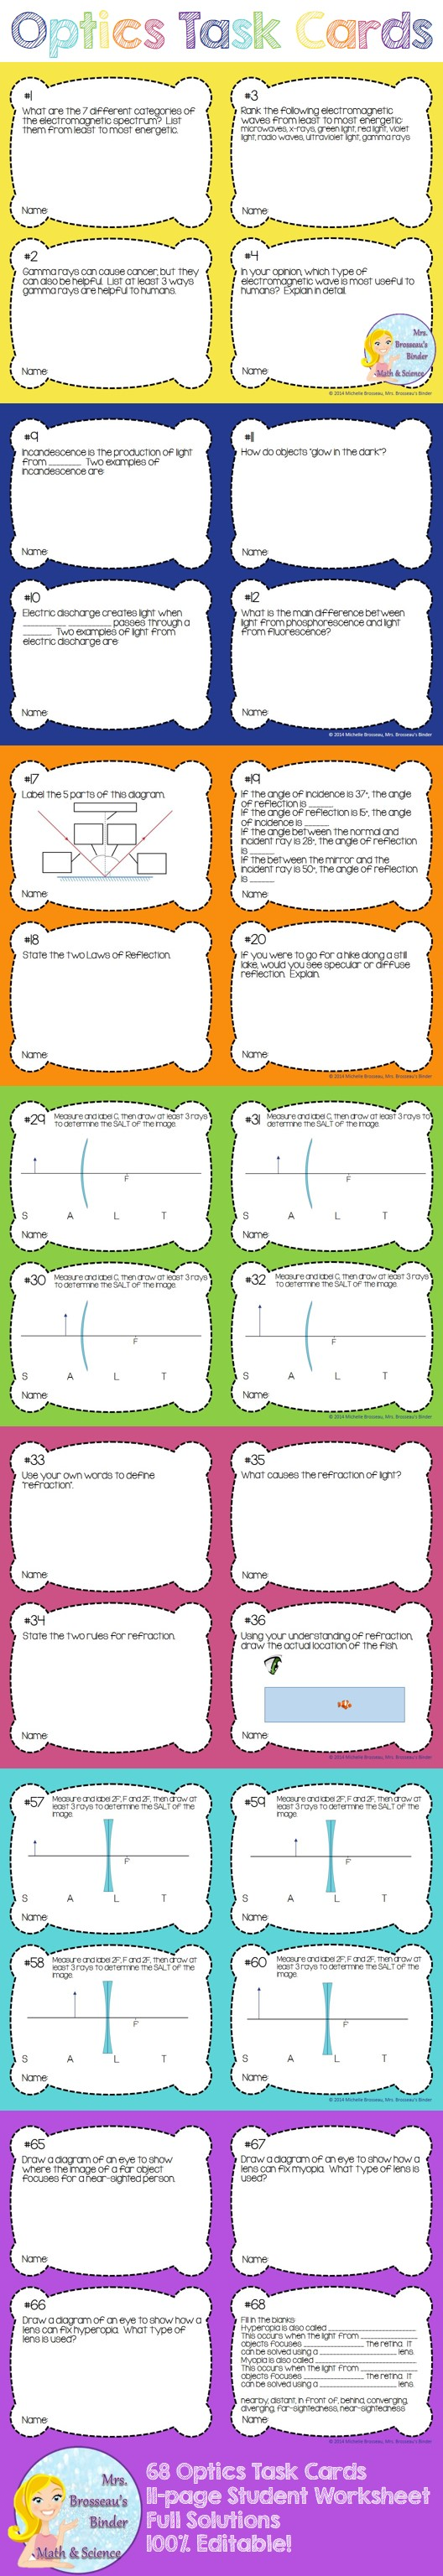 Optics Task Cards - 68 Cards with student worksheets and full solutions!  Topics: Electromagnetic Spectrum [ 3072 x 528 Pixel ]